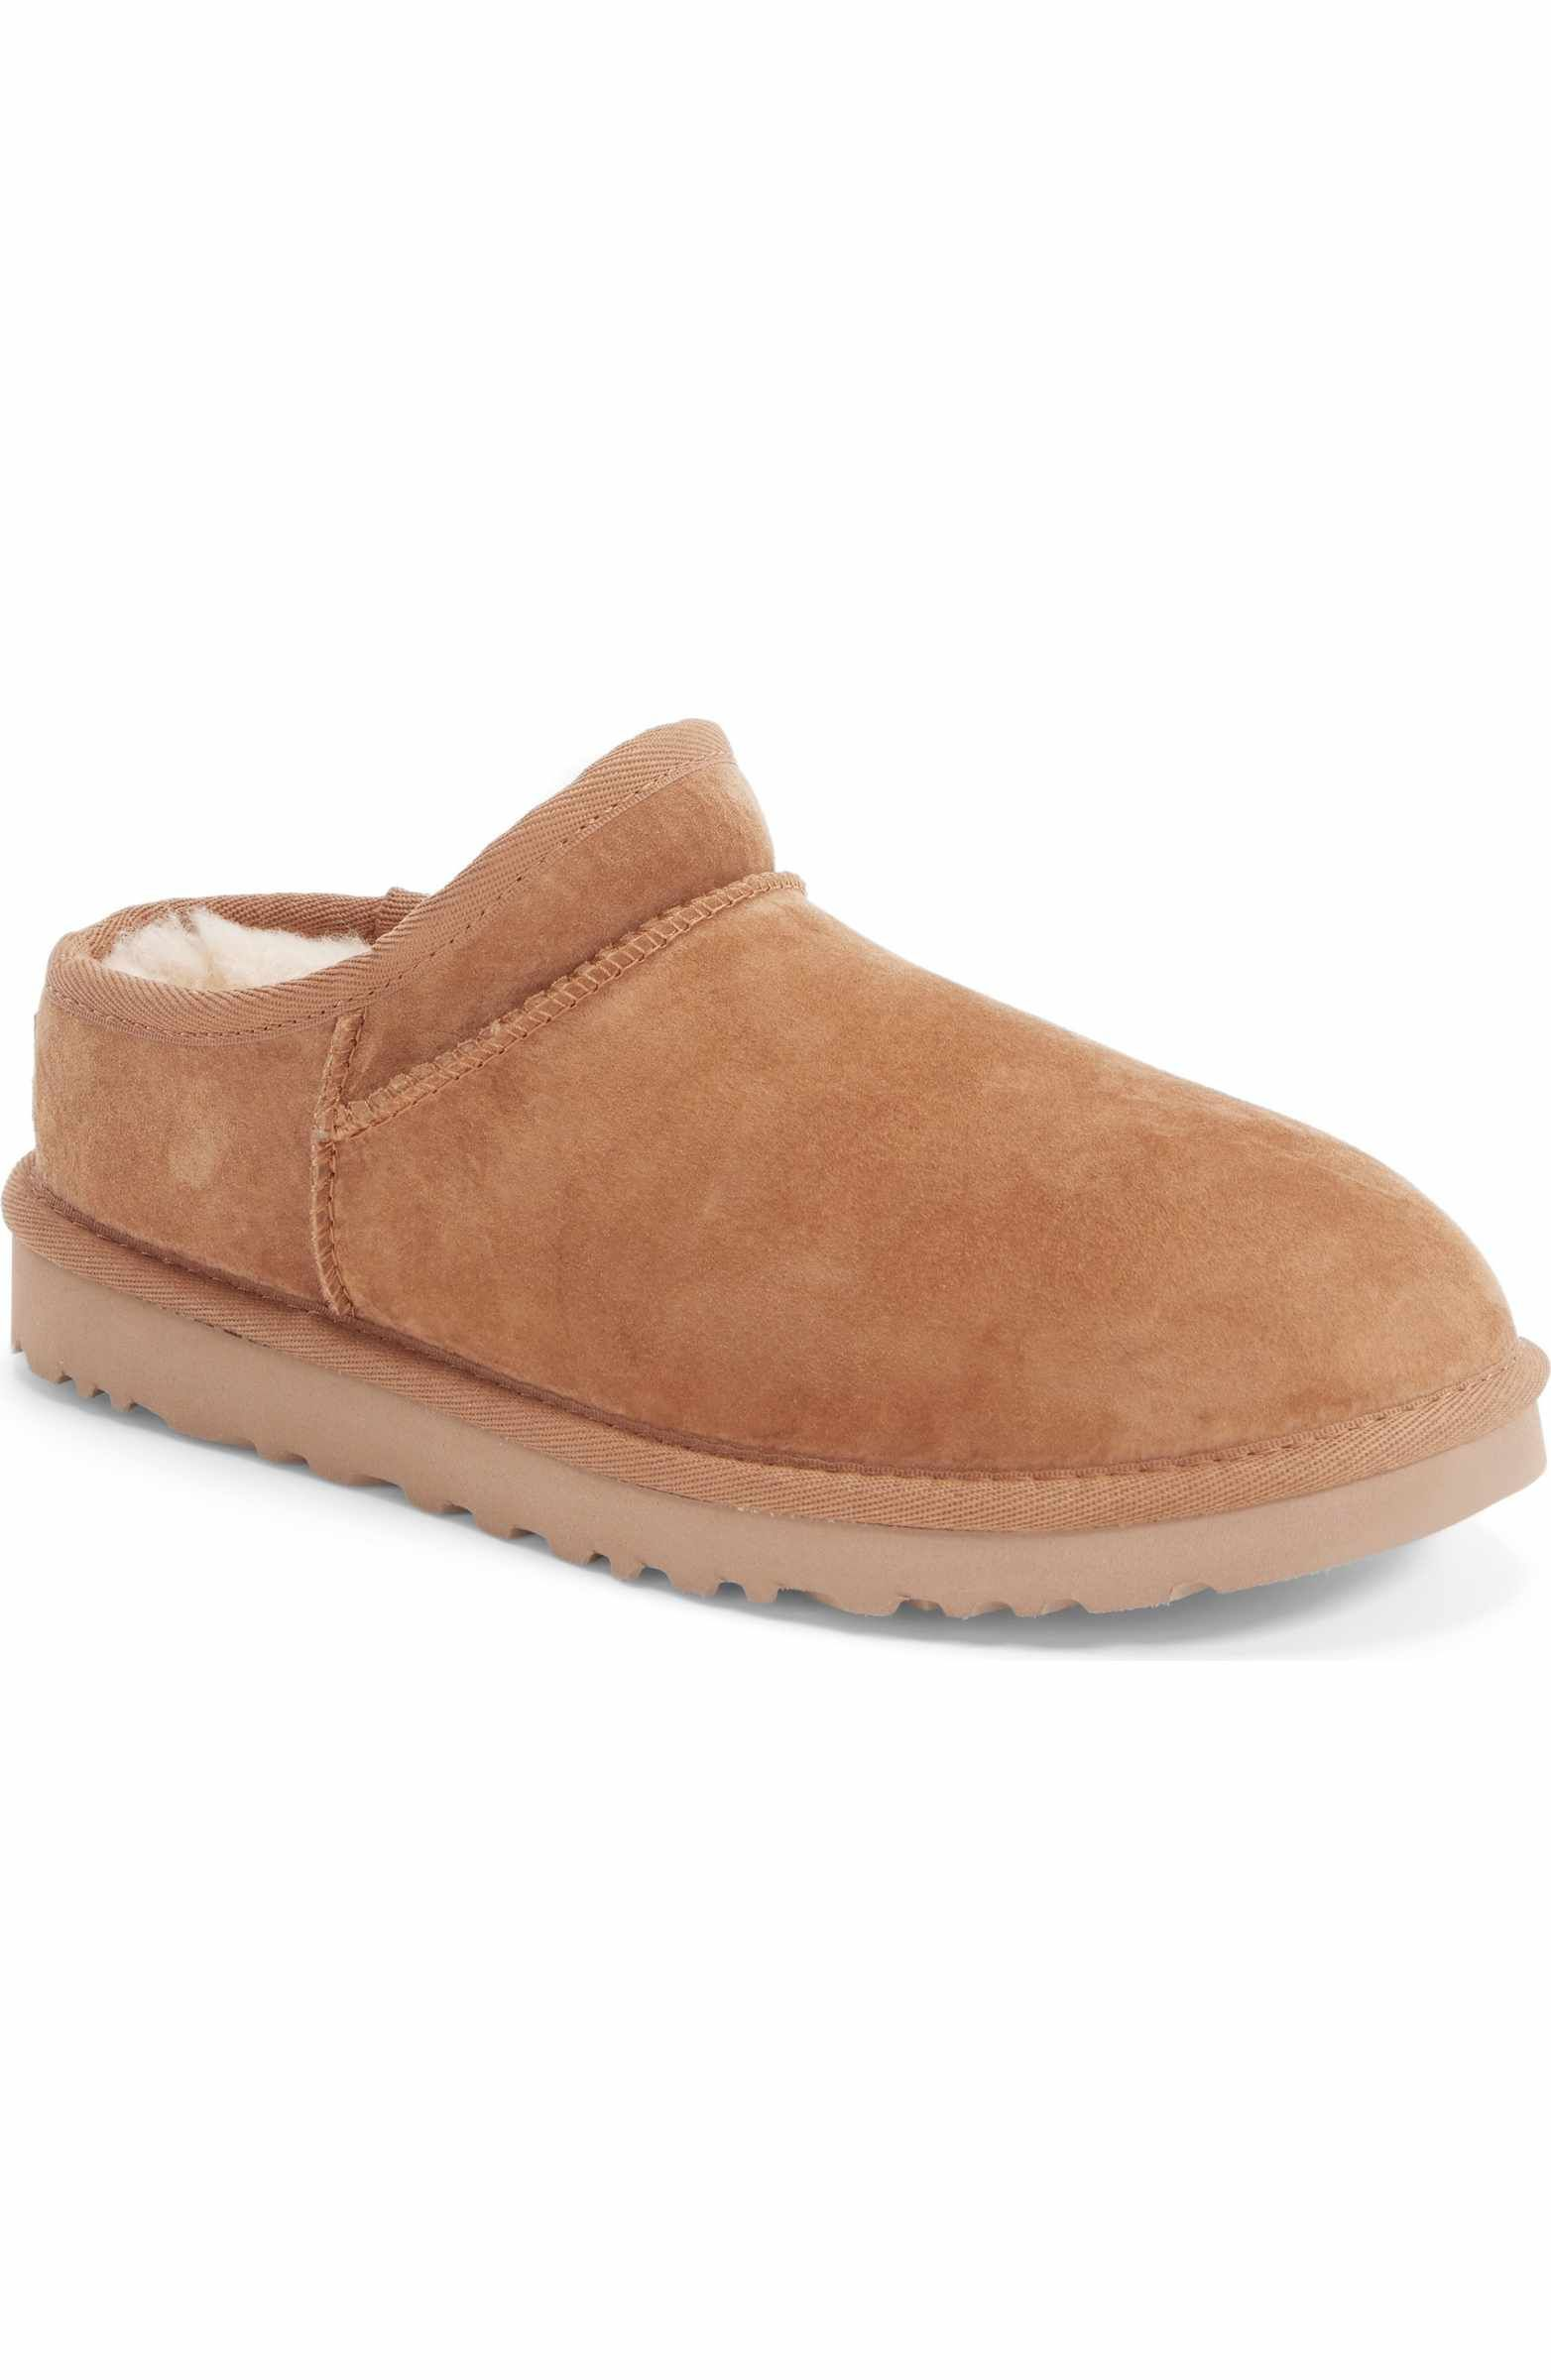 35ff078a79d5 Main Image - UGG® Classic Water Resistant Slipper (Women)